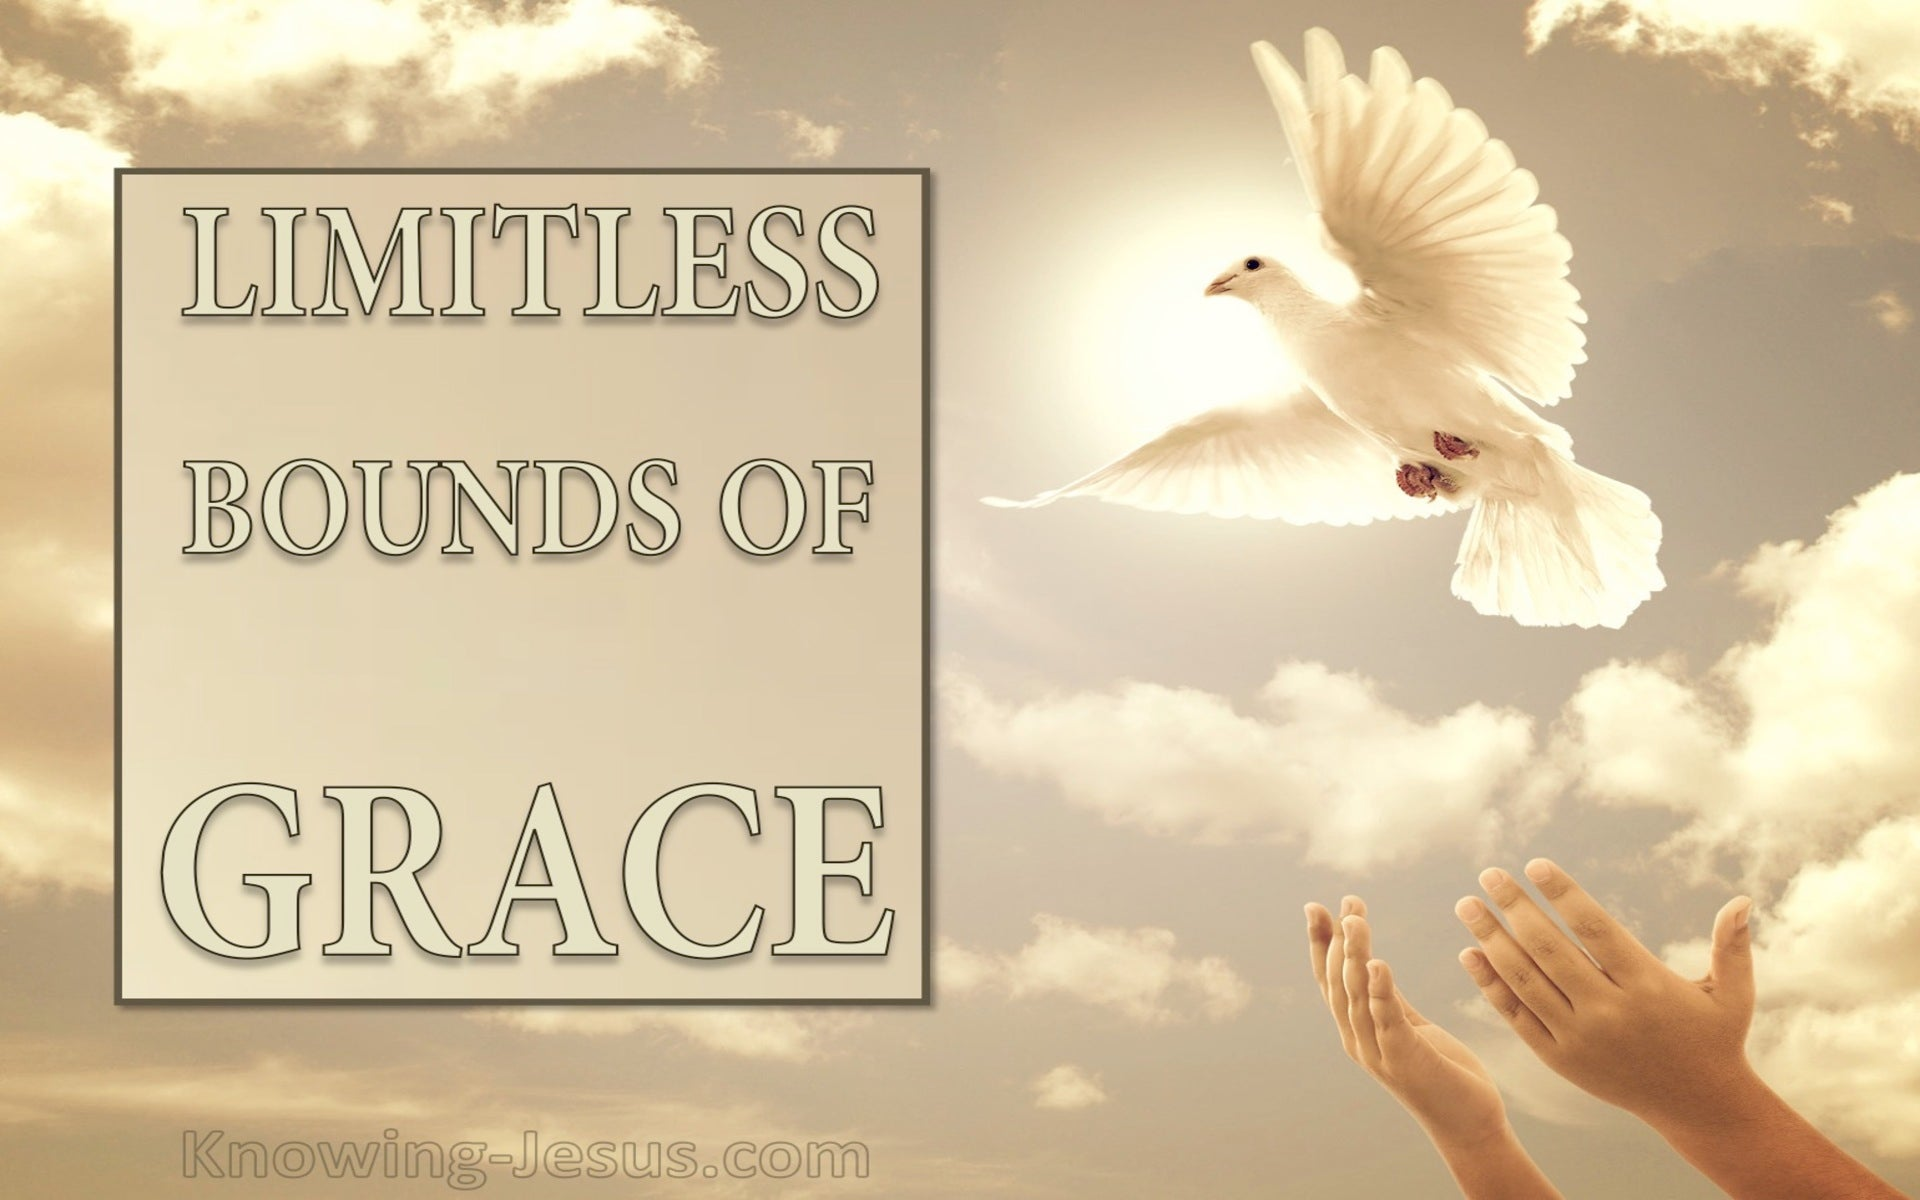 Limitless Bounds of Grace (devotional)02-11 (cream)